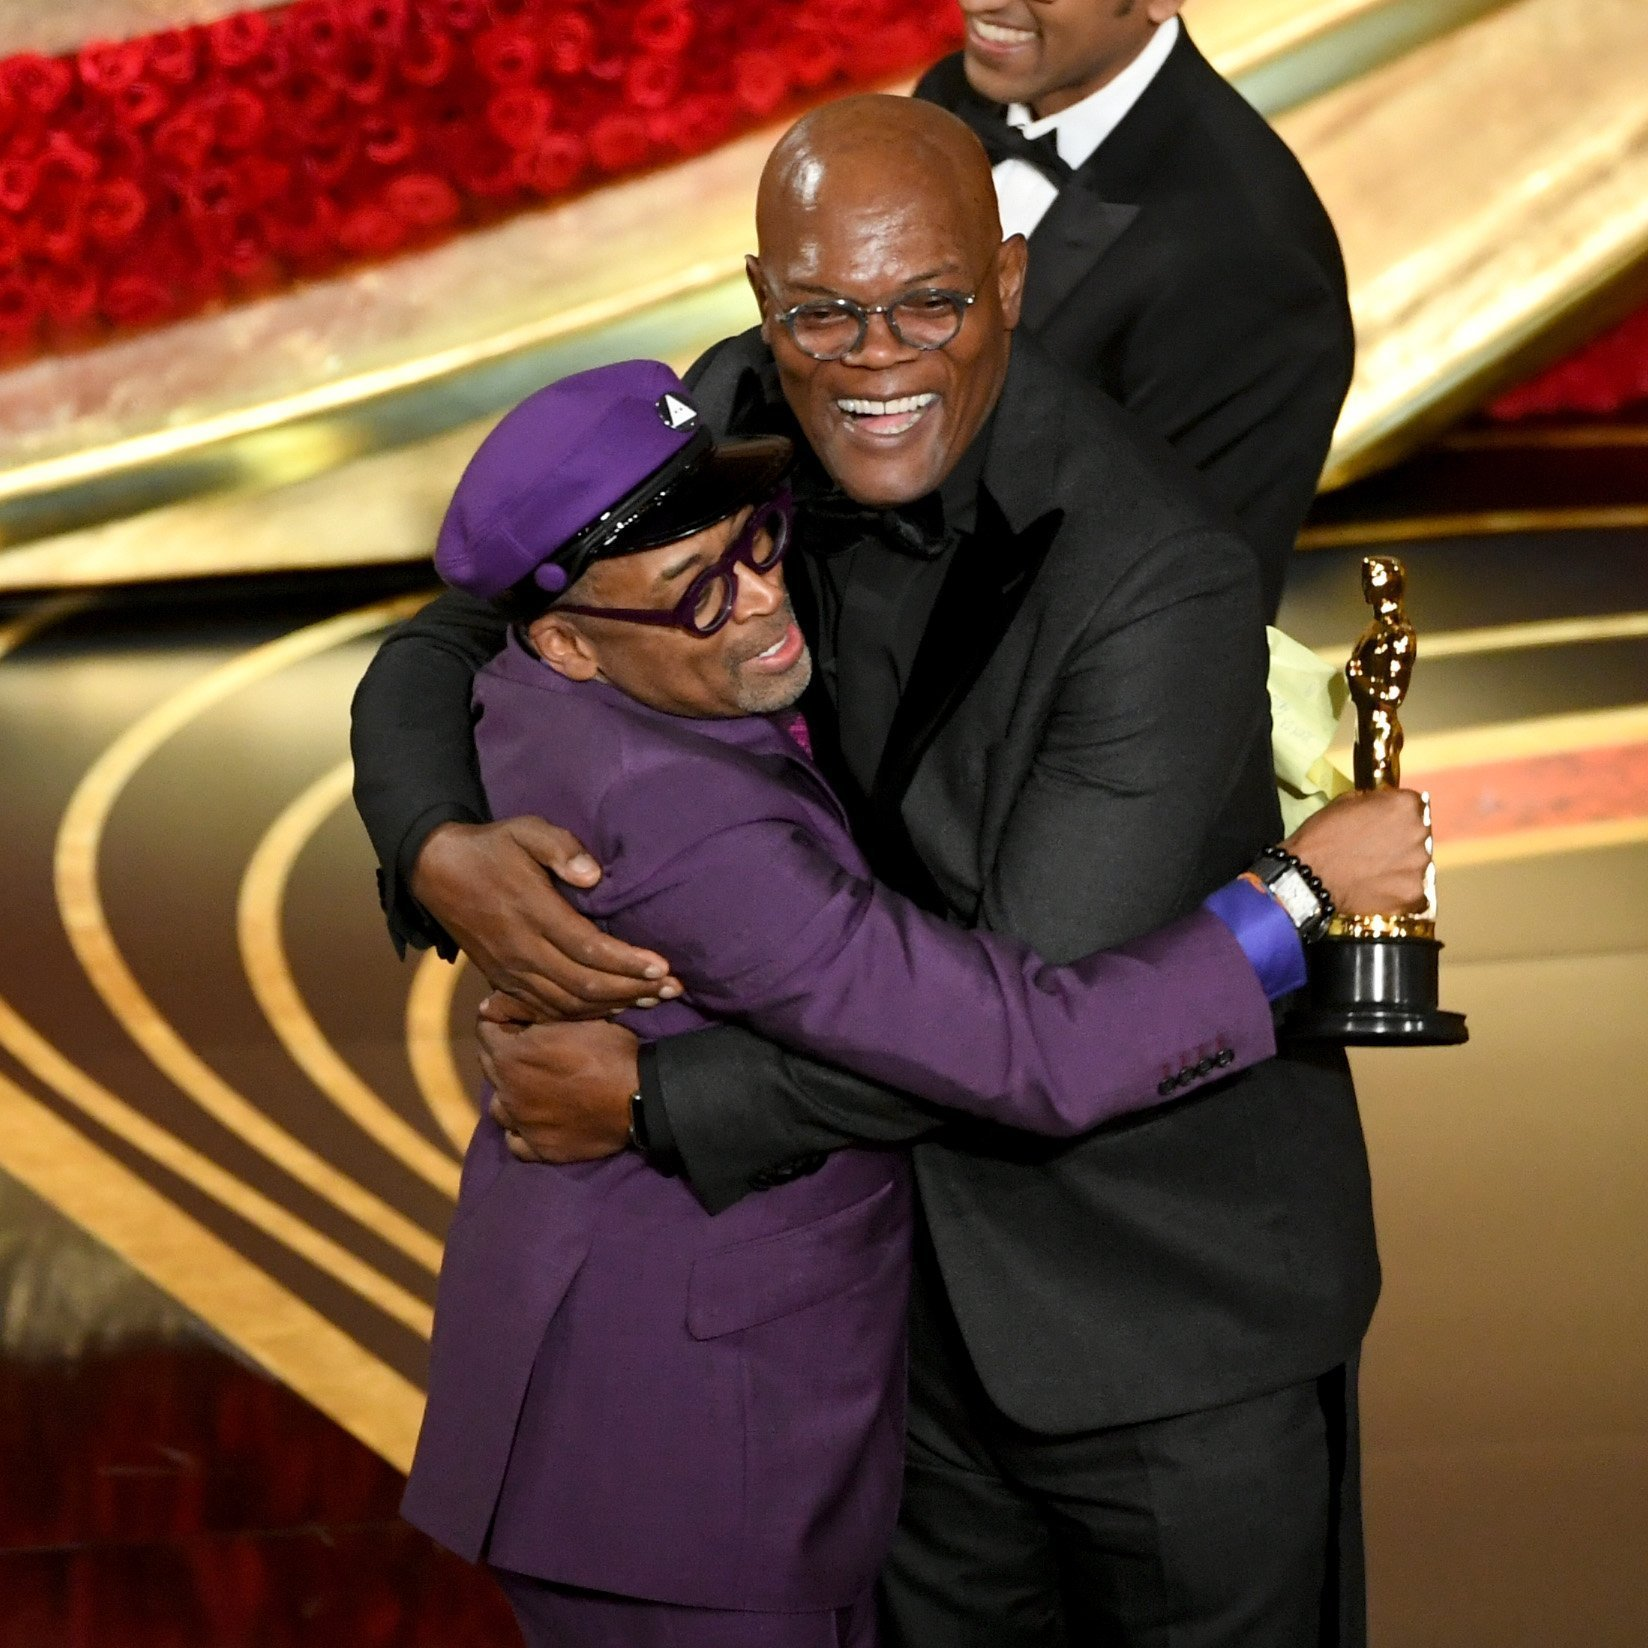 Samuel Jackson hugging Spike Lee at the 91st Annual Academy Awards | Photo: Getty Images